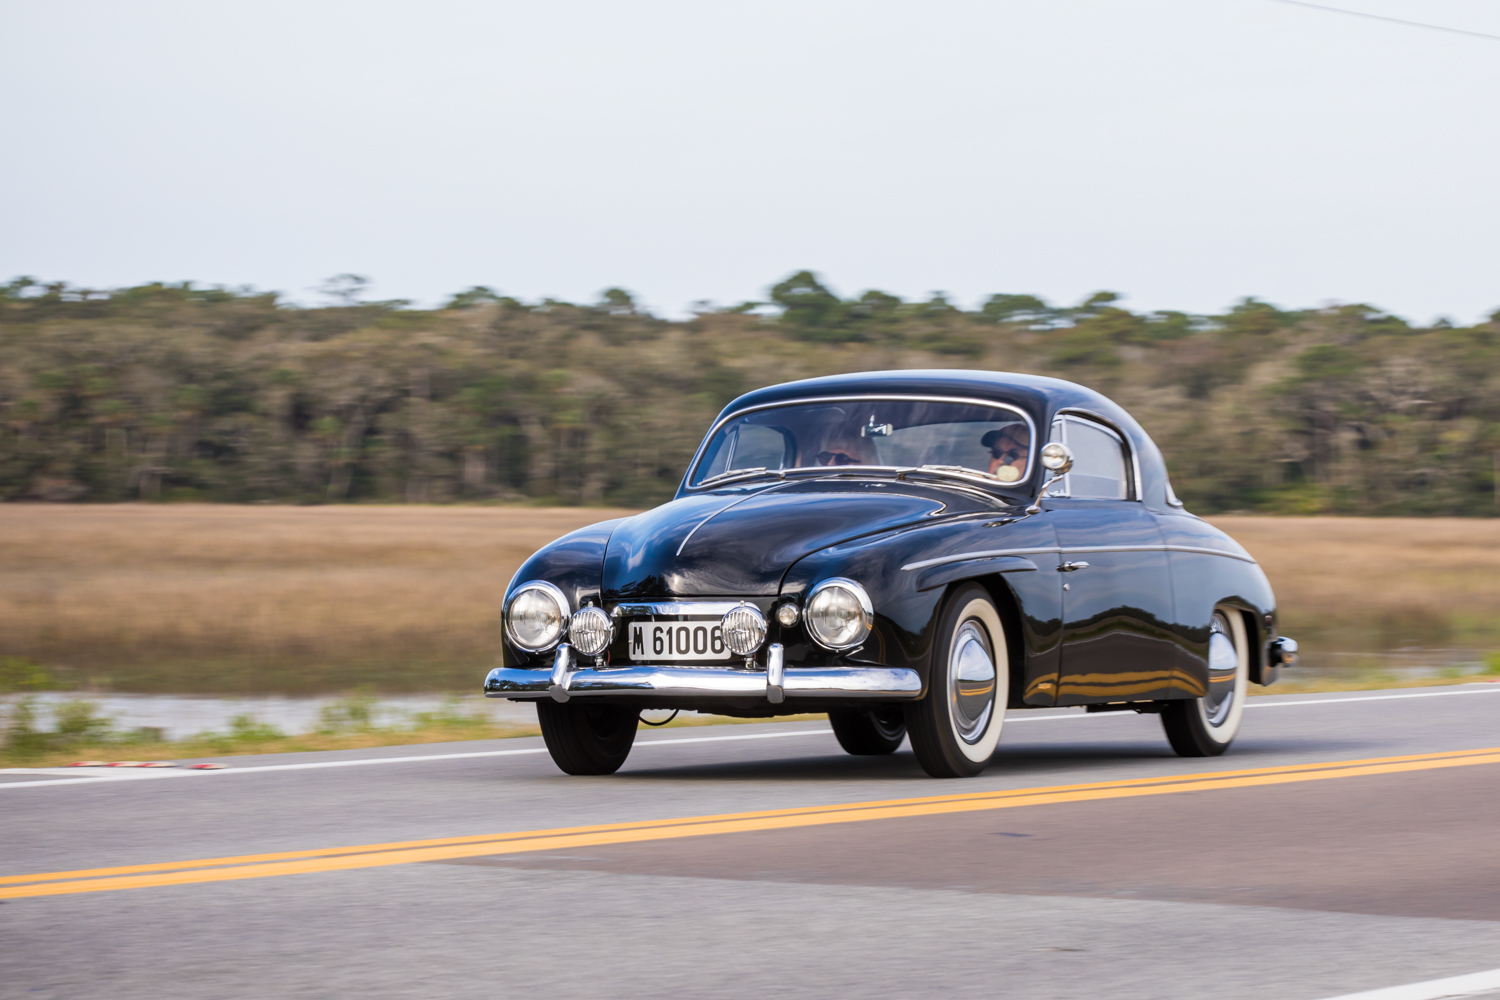 1954 Rometsch Beeskow Coupe on road